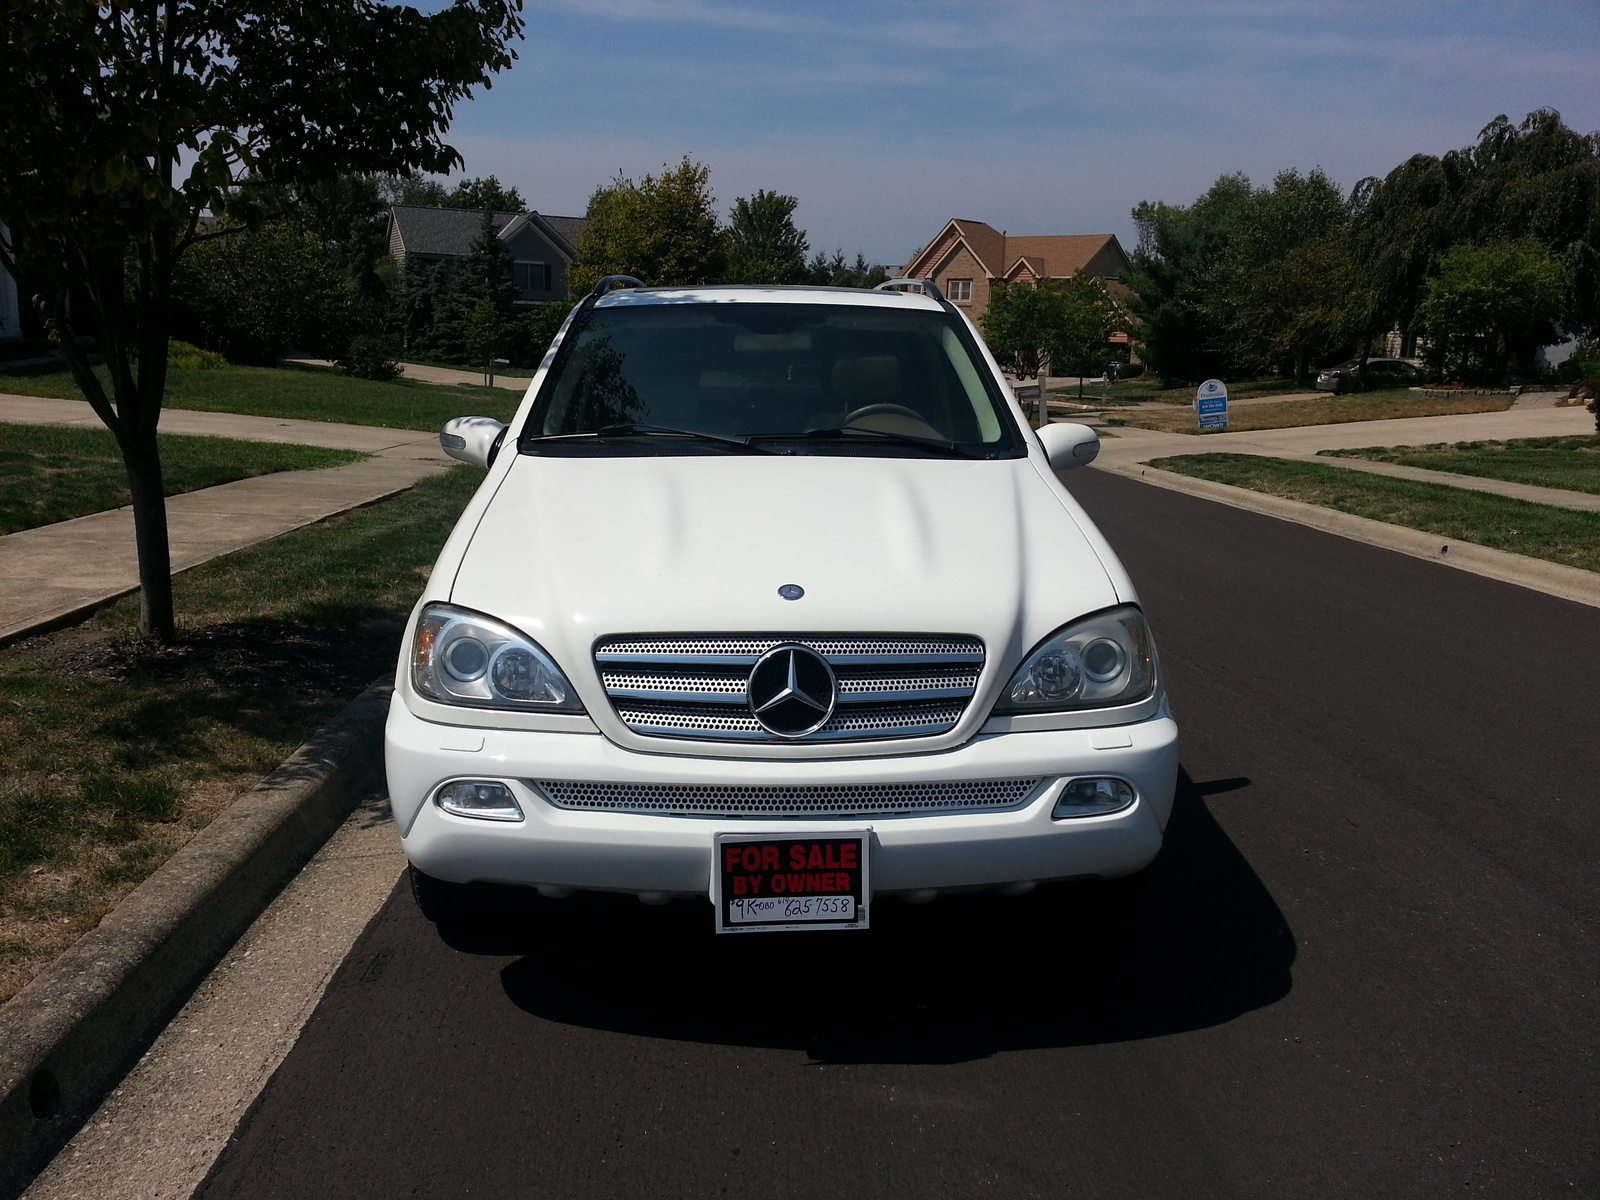 2005 mercedes benz m class pictures cargurus for 2005 mercedes benz suv